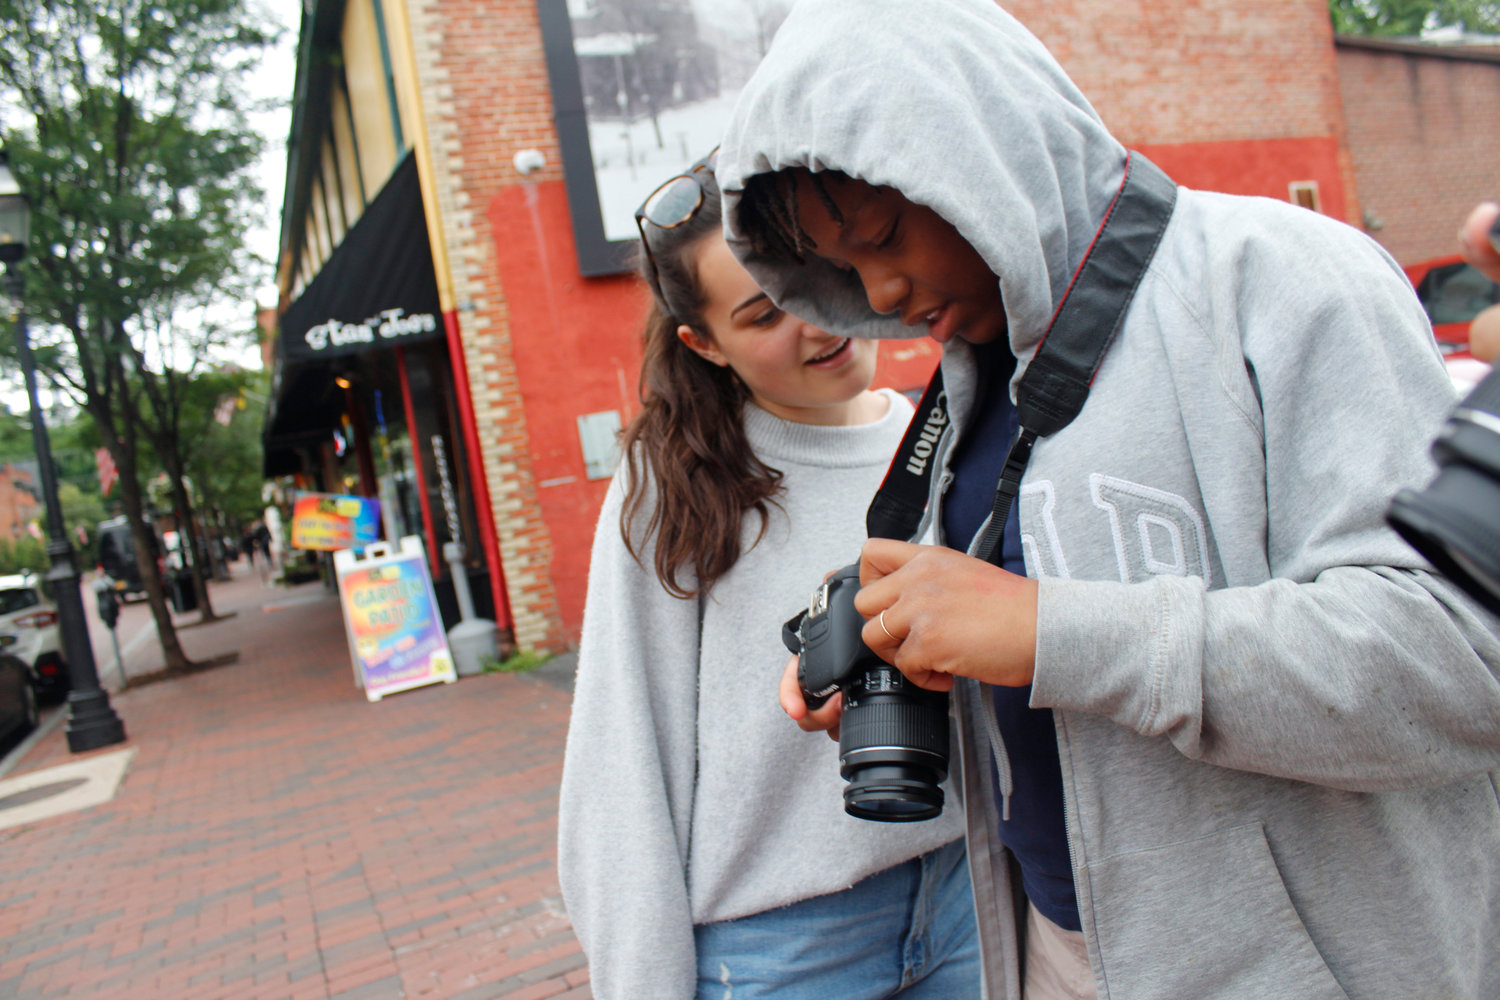 Sophie Macaluso (background) teaches photography during pop-up shops, after-school events and summer camps located in the Annapolis area.